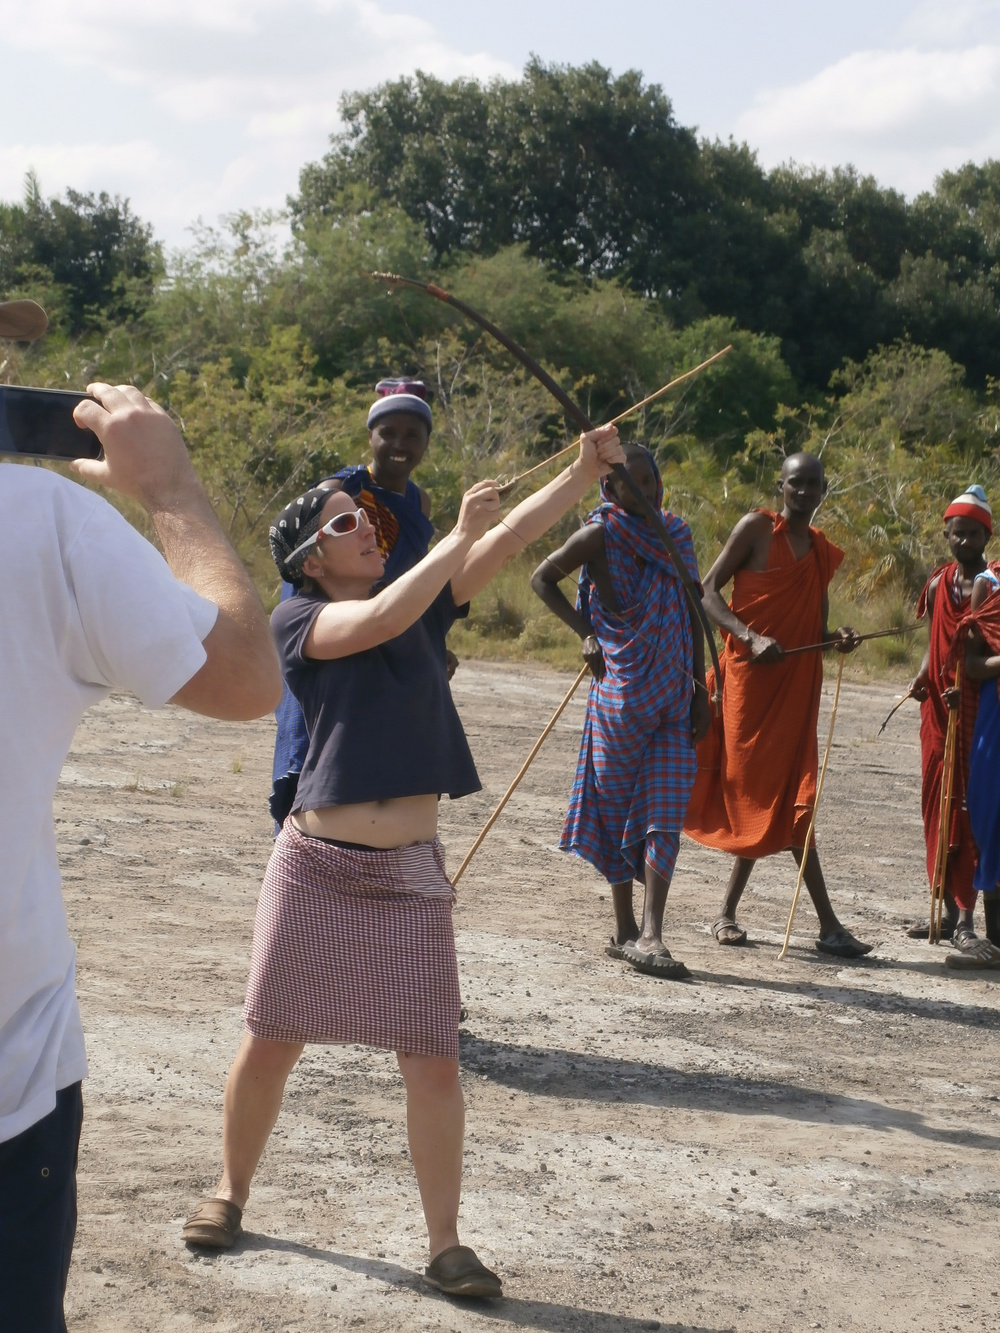 The maasai gaze in amazement to see a women competing in their very traditional use of the Bow and Arrow.  This weapon is still used by the maasai moran warriors for hunting and security.